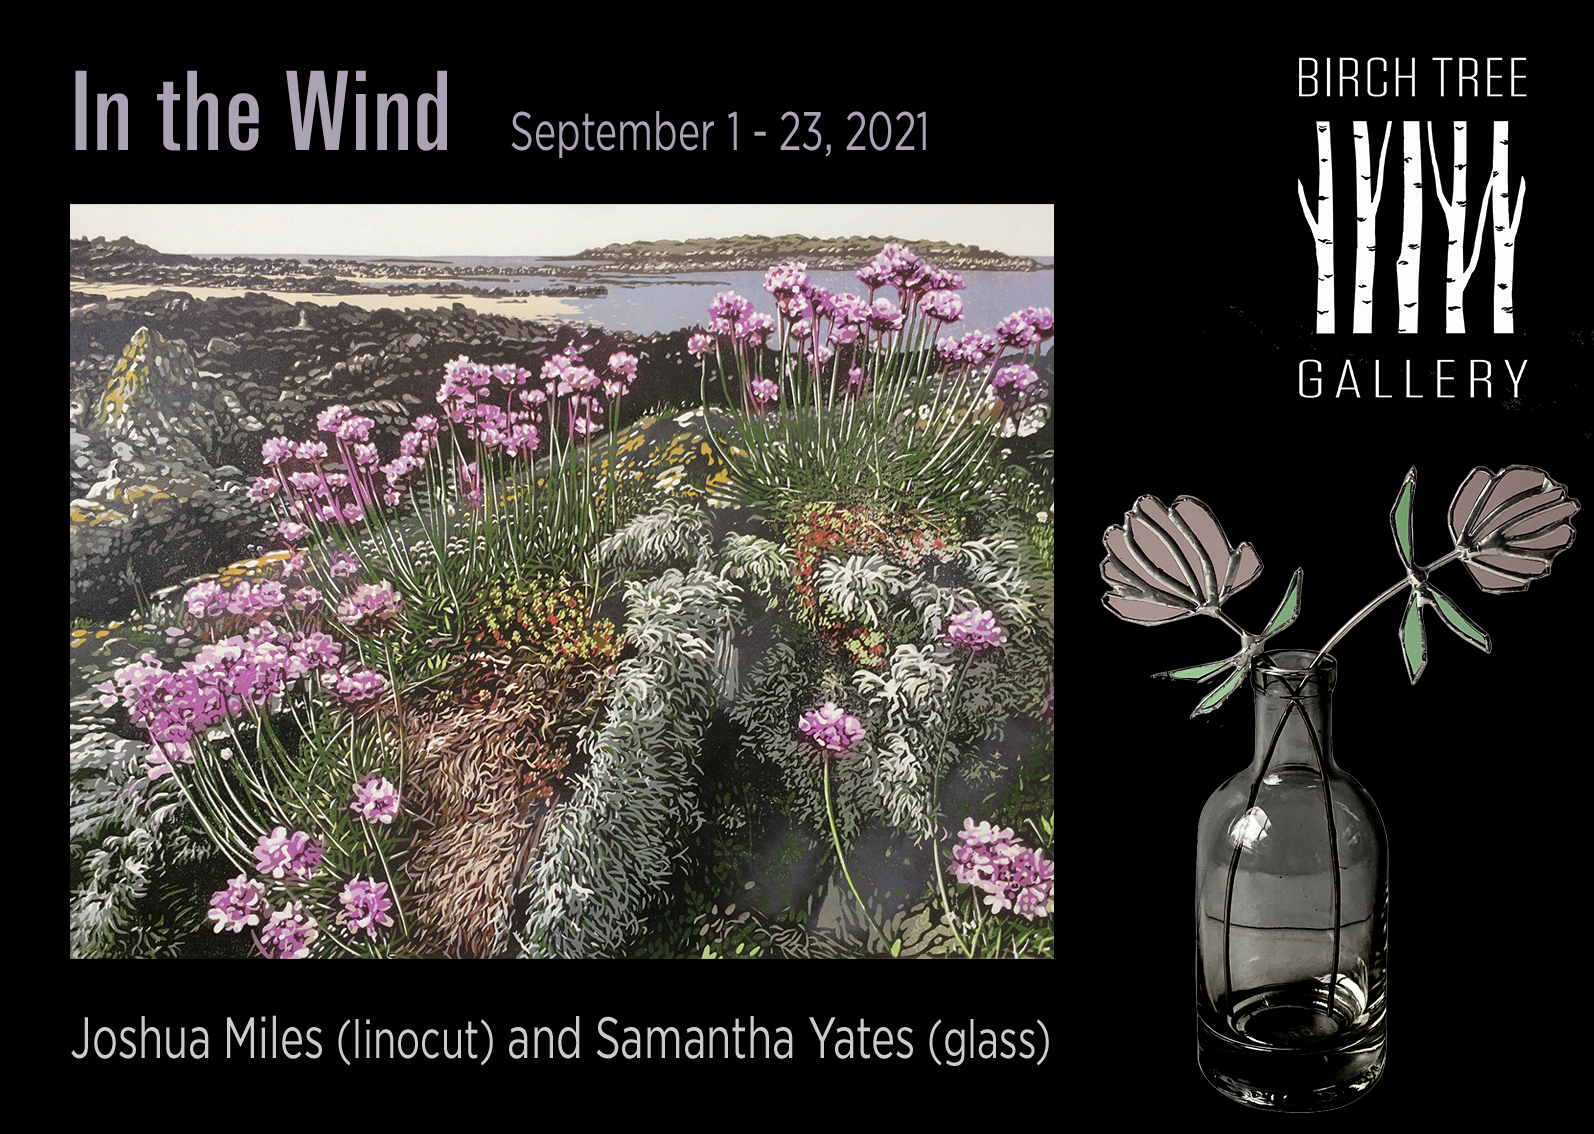 Poster for exhibition of linocut and glass 'In the Wind' in September 2021, Edinburgh